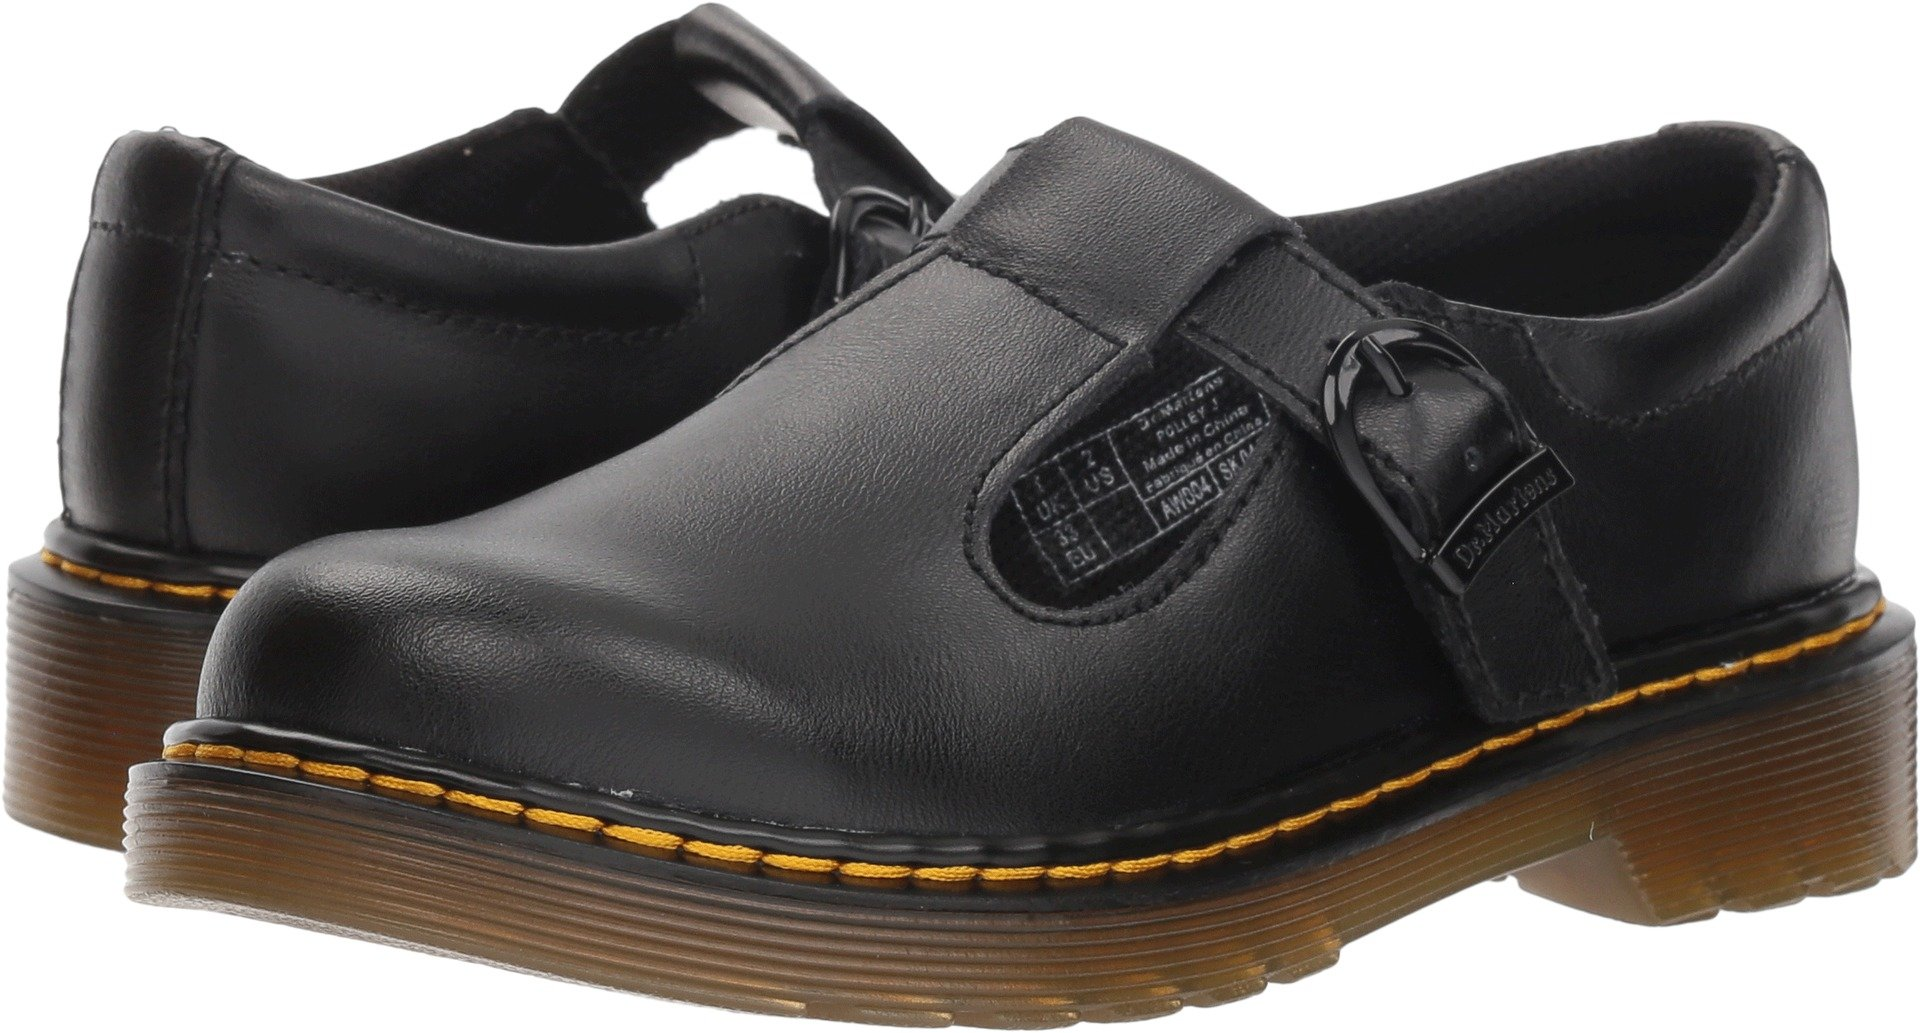 a9ad8522bfc3f Galleon - Dr. Martens Girls Junior Polley Black T Lamper Mary Jane School  Shoes Size 2